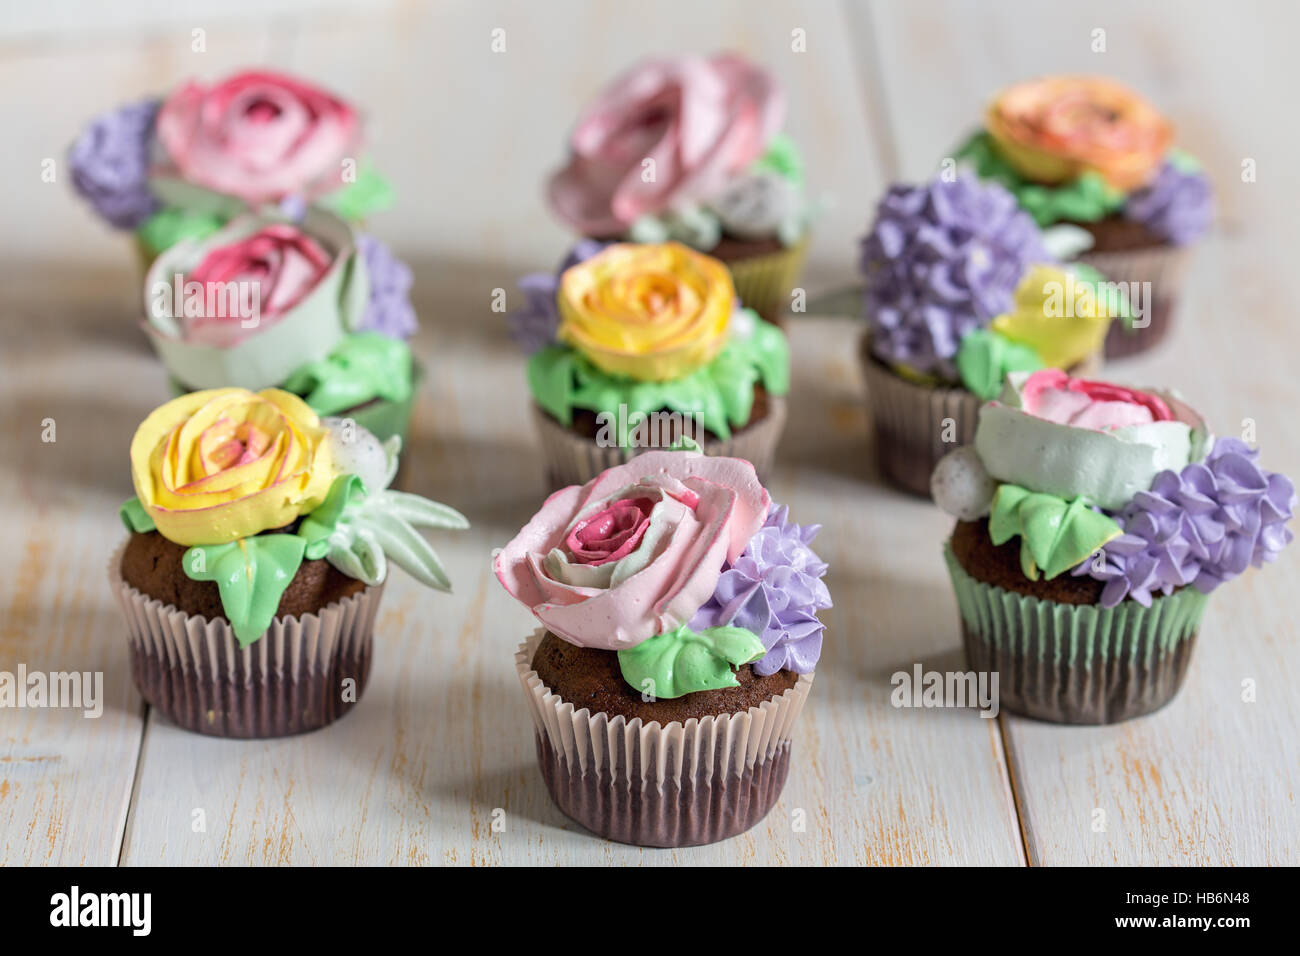 Chocolate cupcakes with cream-colored flowers. - Stock Image